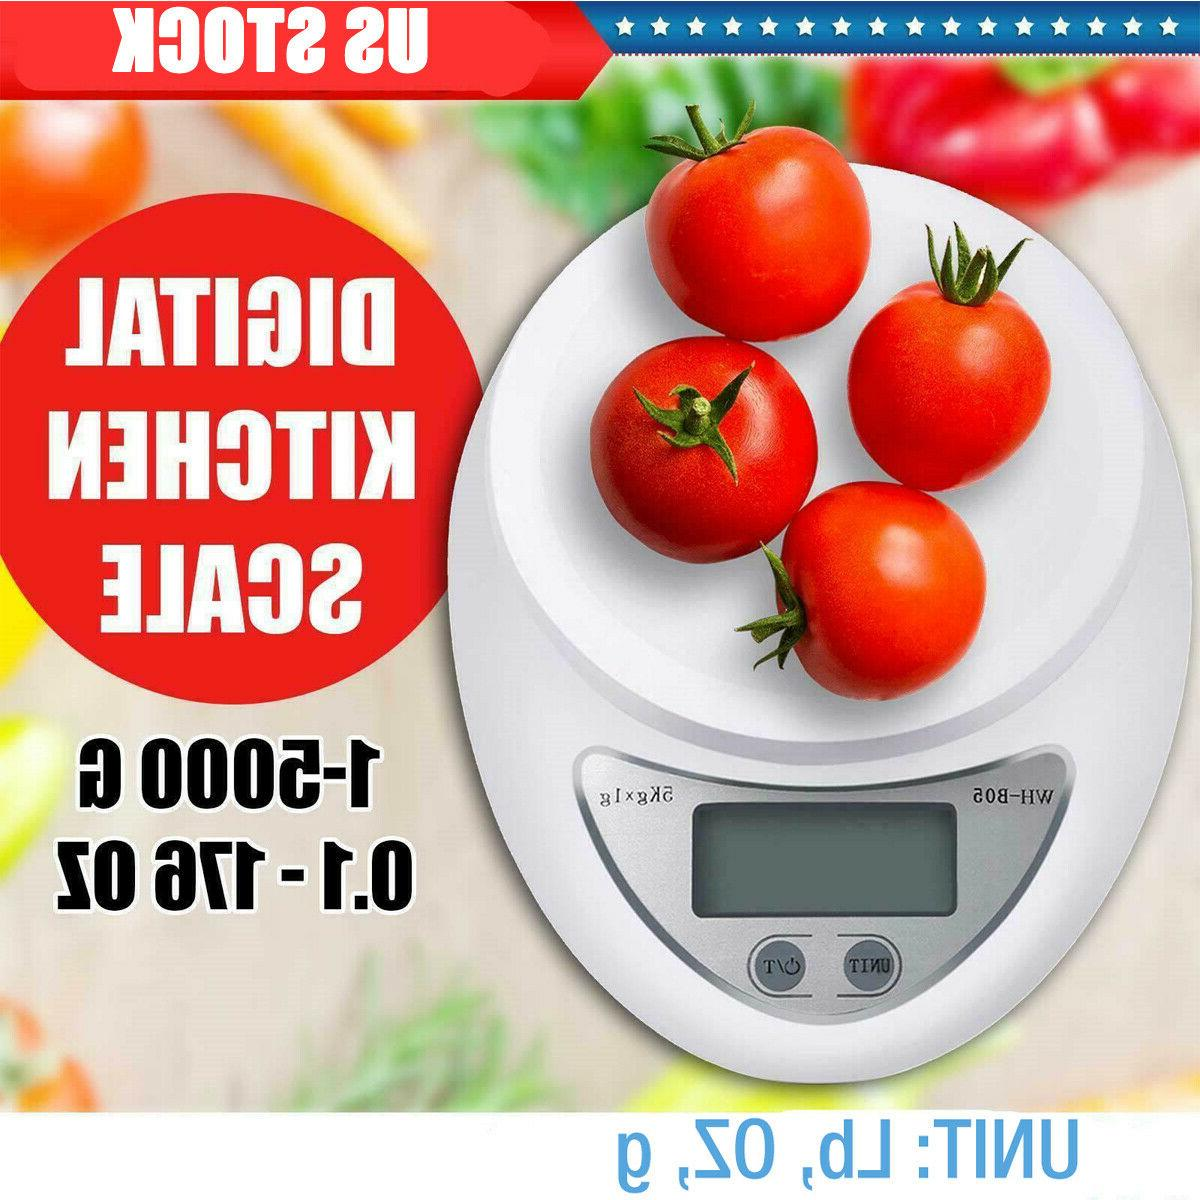 new digital kitchen food cooking scale weigh